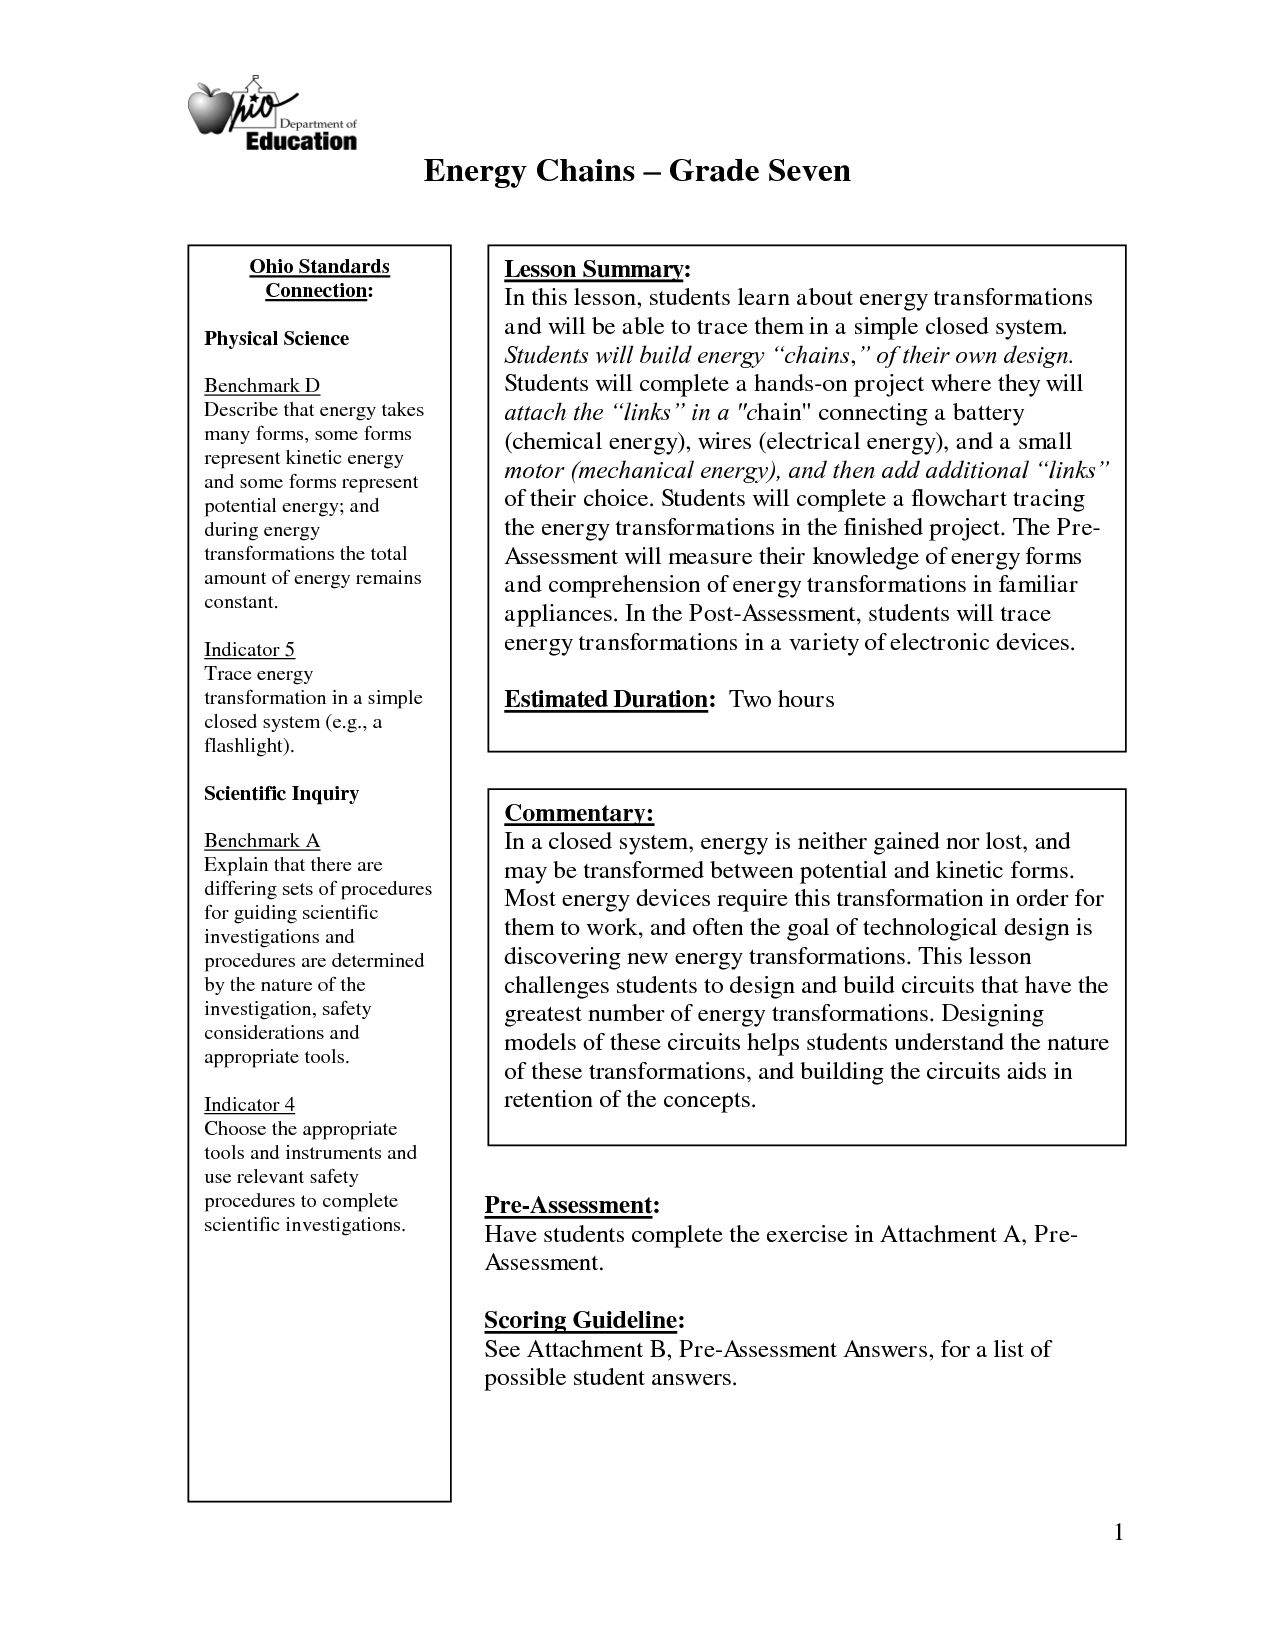 Energy Worksheet 4th Grade